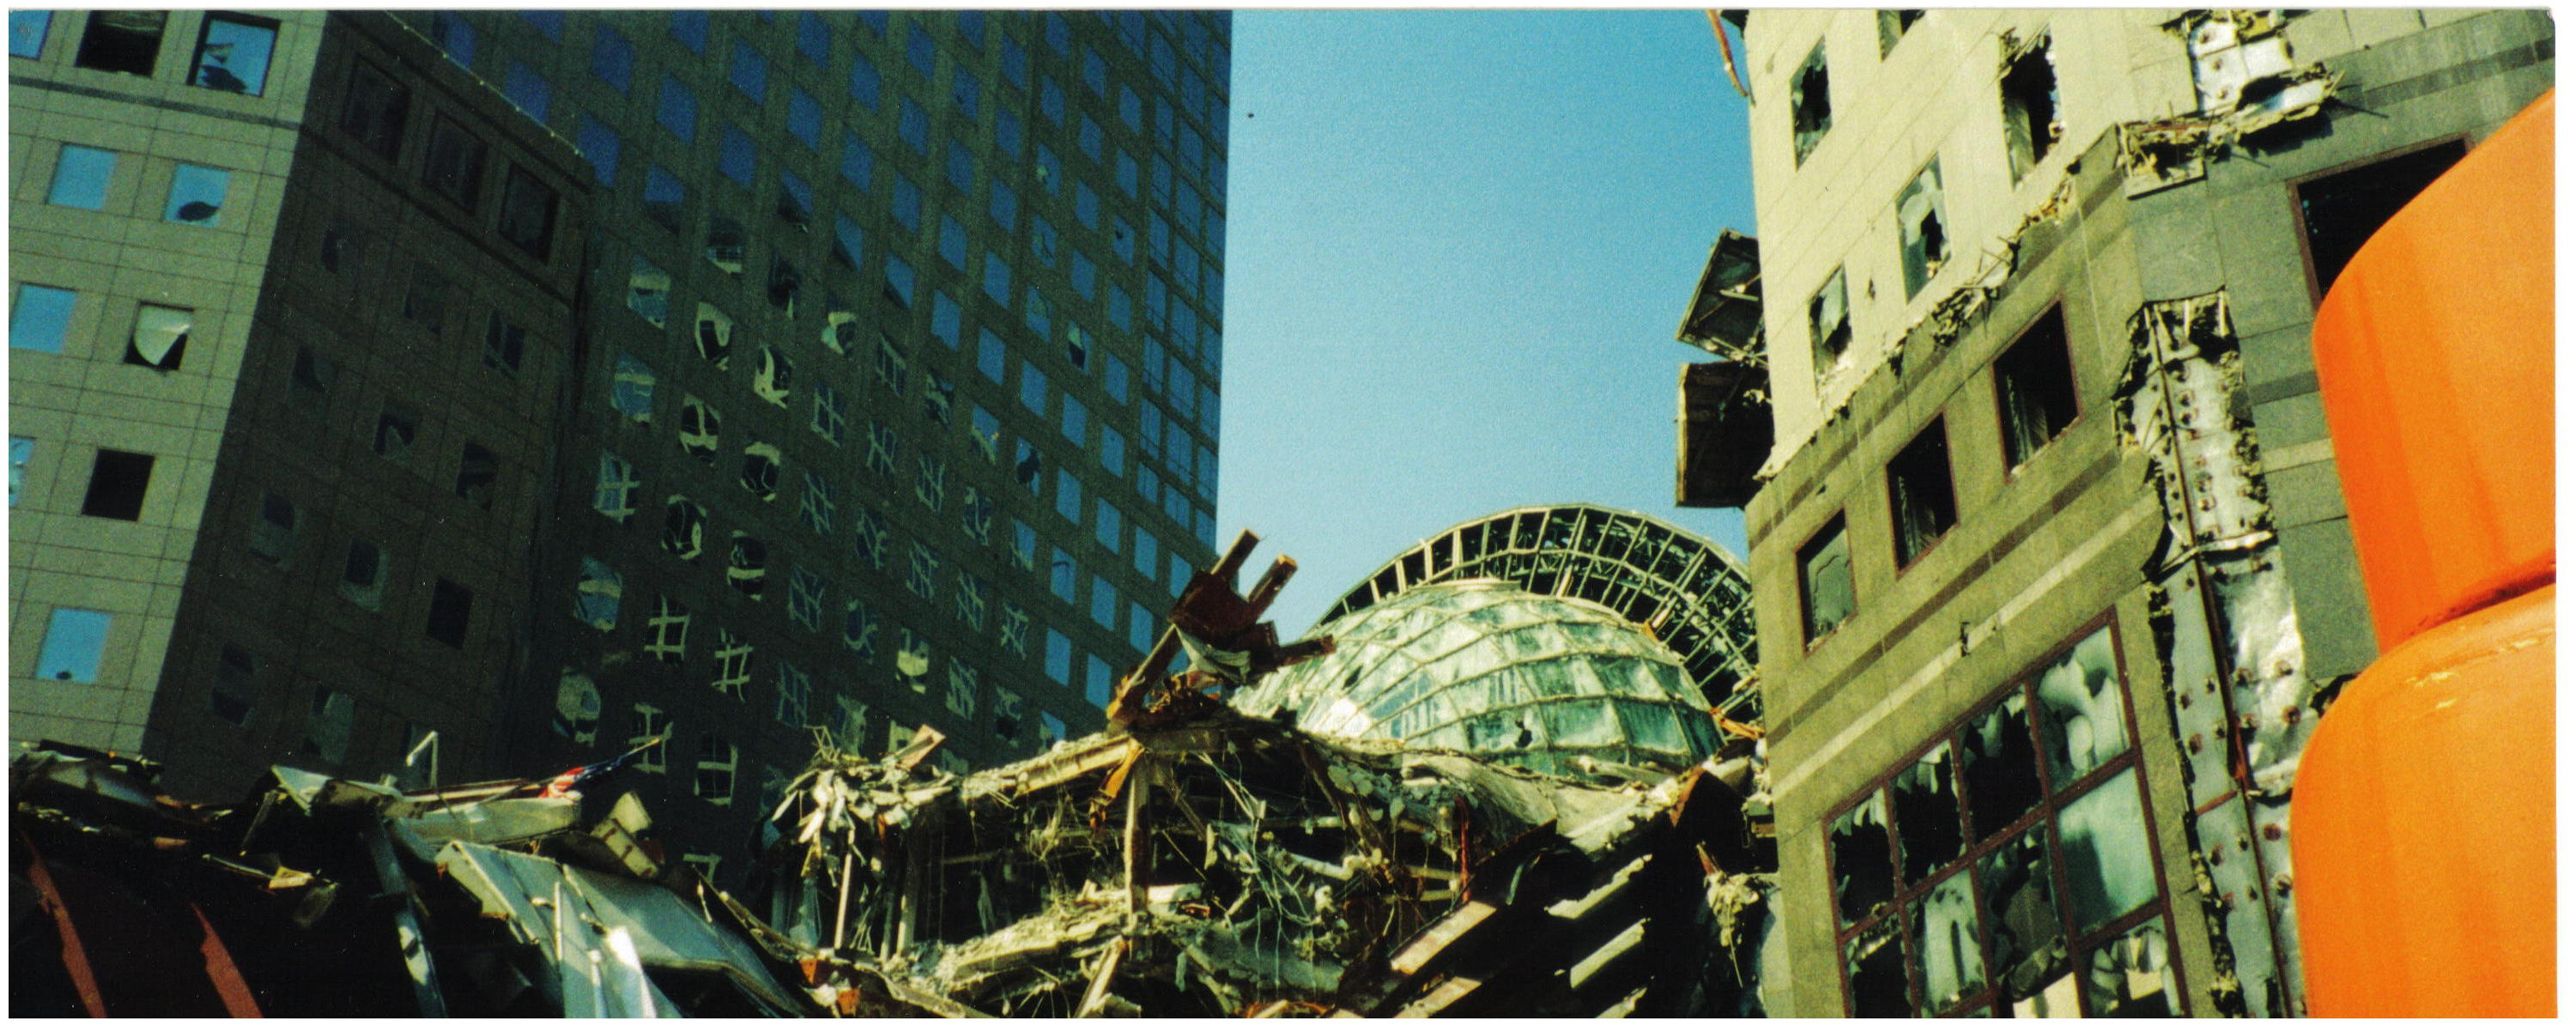 Charming File:Damage To Winter Garden After 9 11